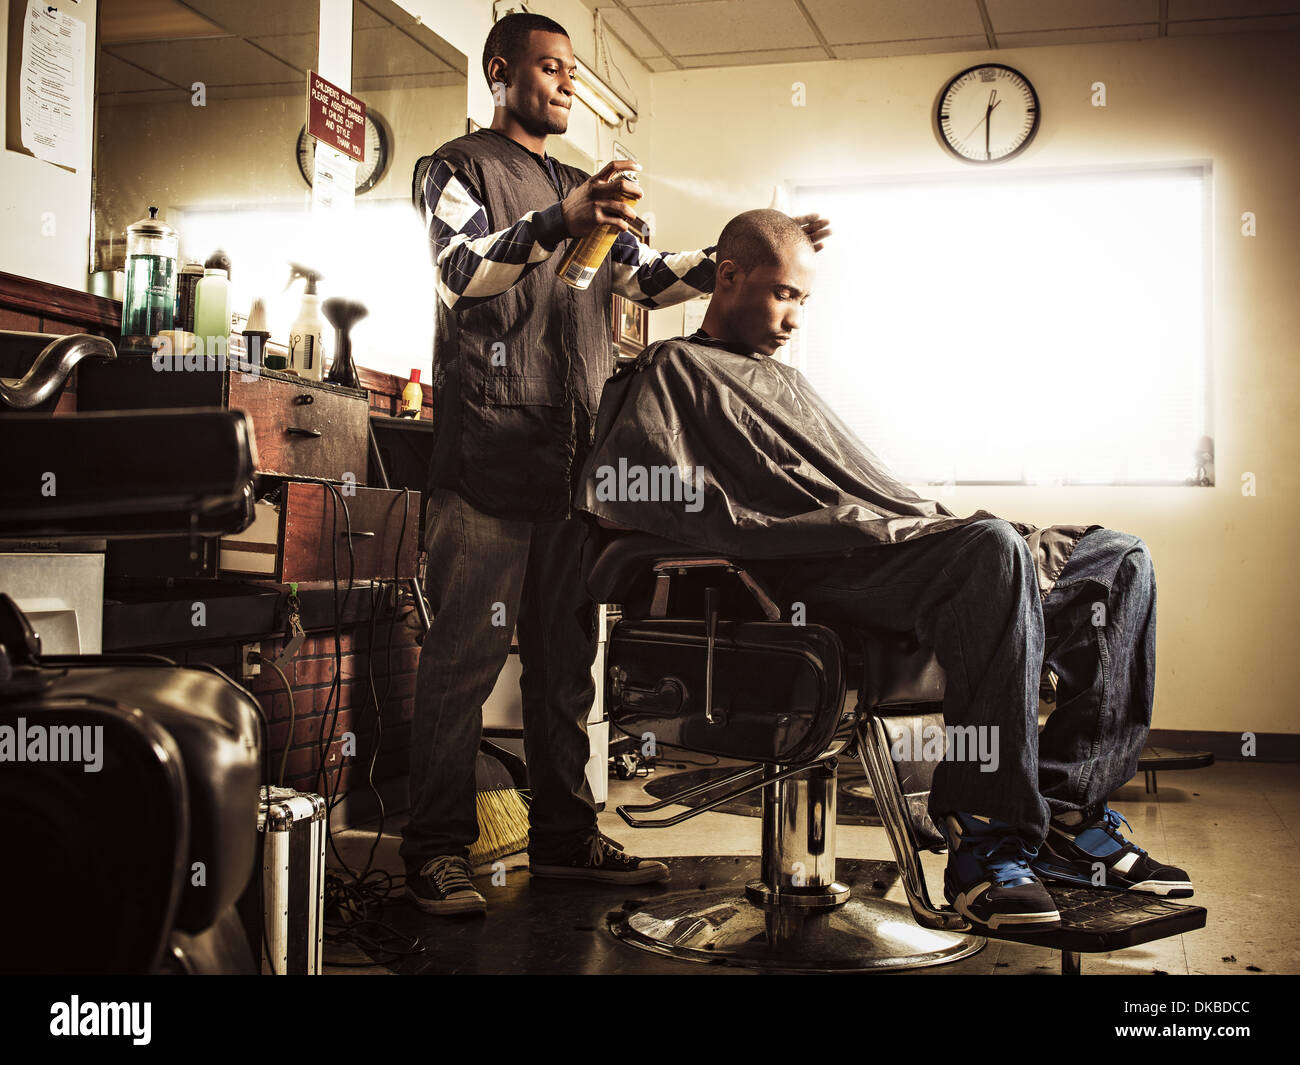 Barber in traditional barber shop spraying hairspray on man - Stock Image